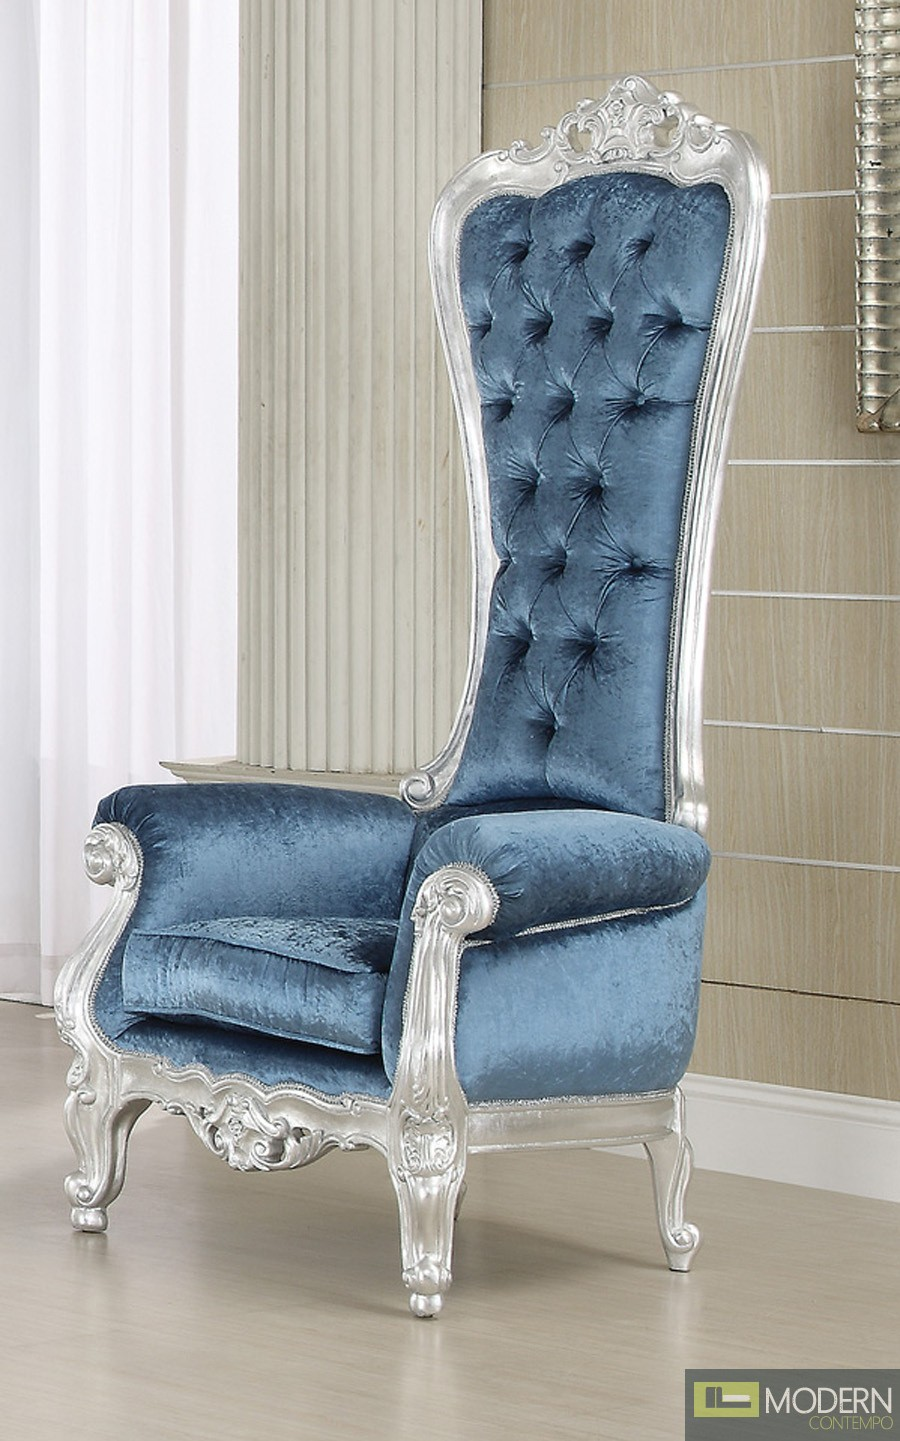 French Style Victorian Extreme HighBack ROYAL Throne